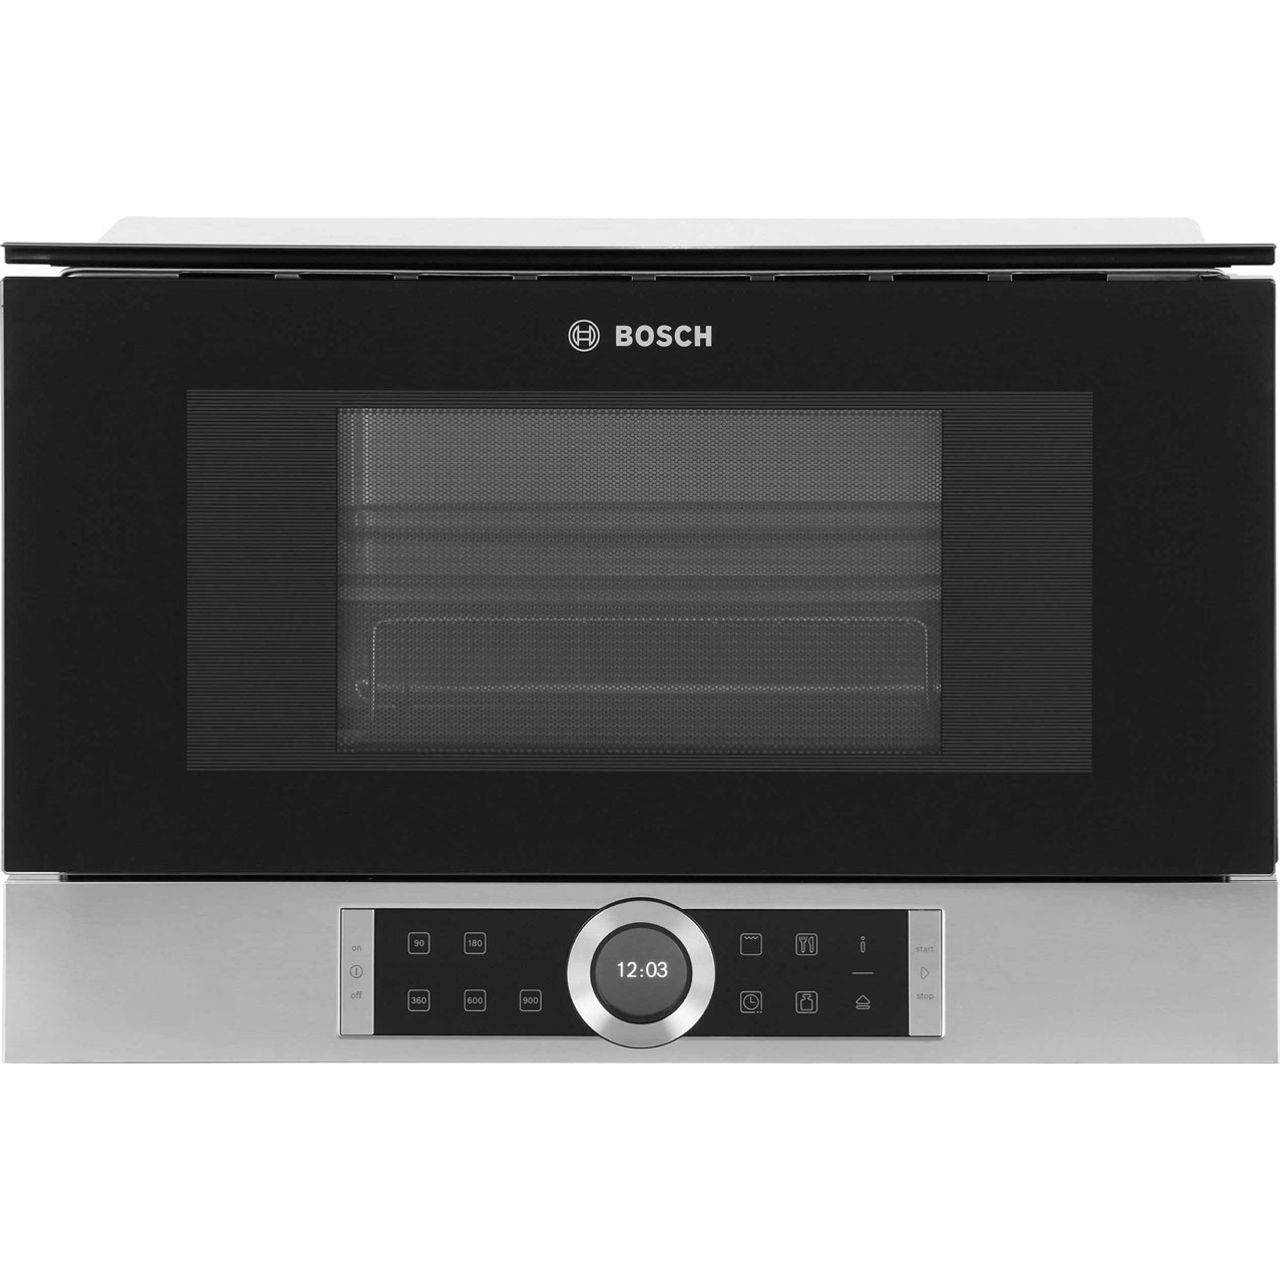 Bosch Serie 8 BEL634GS1B Integrated Microwave Oven in Brushed Steel